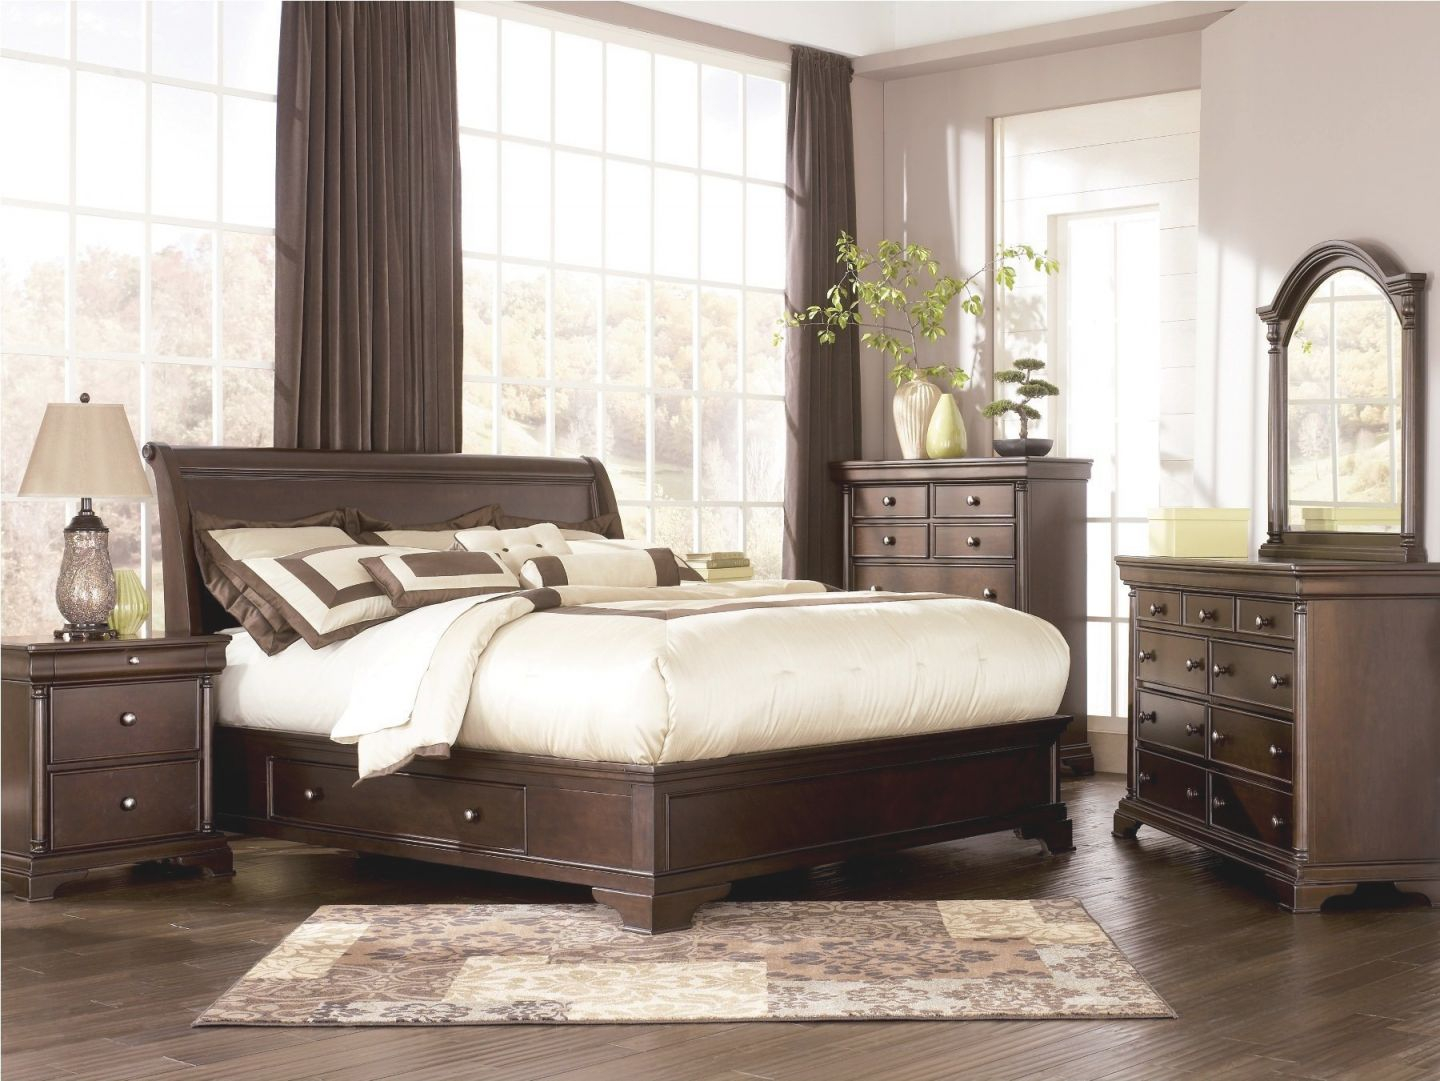 Ausgezeichnet King Sleigh Bed Ashley Furniture Greensburg For Beautiful Ashley Furniture Porter Bedroom Set Awesome Decors